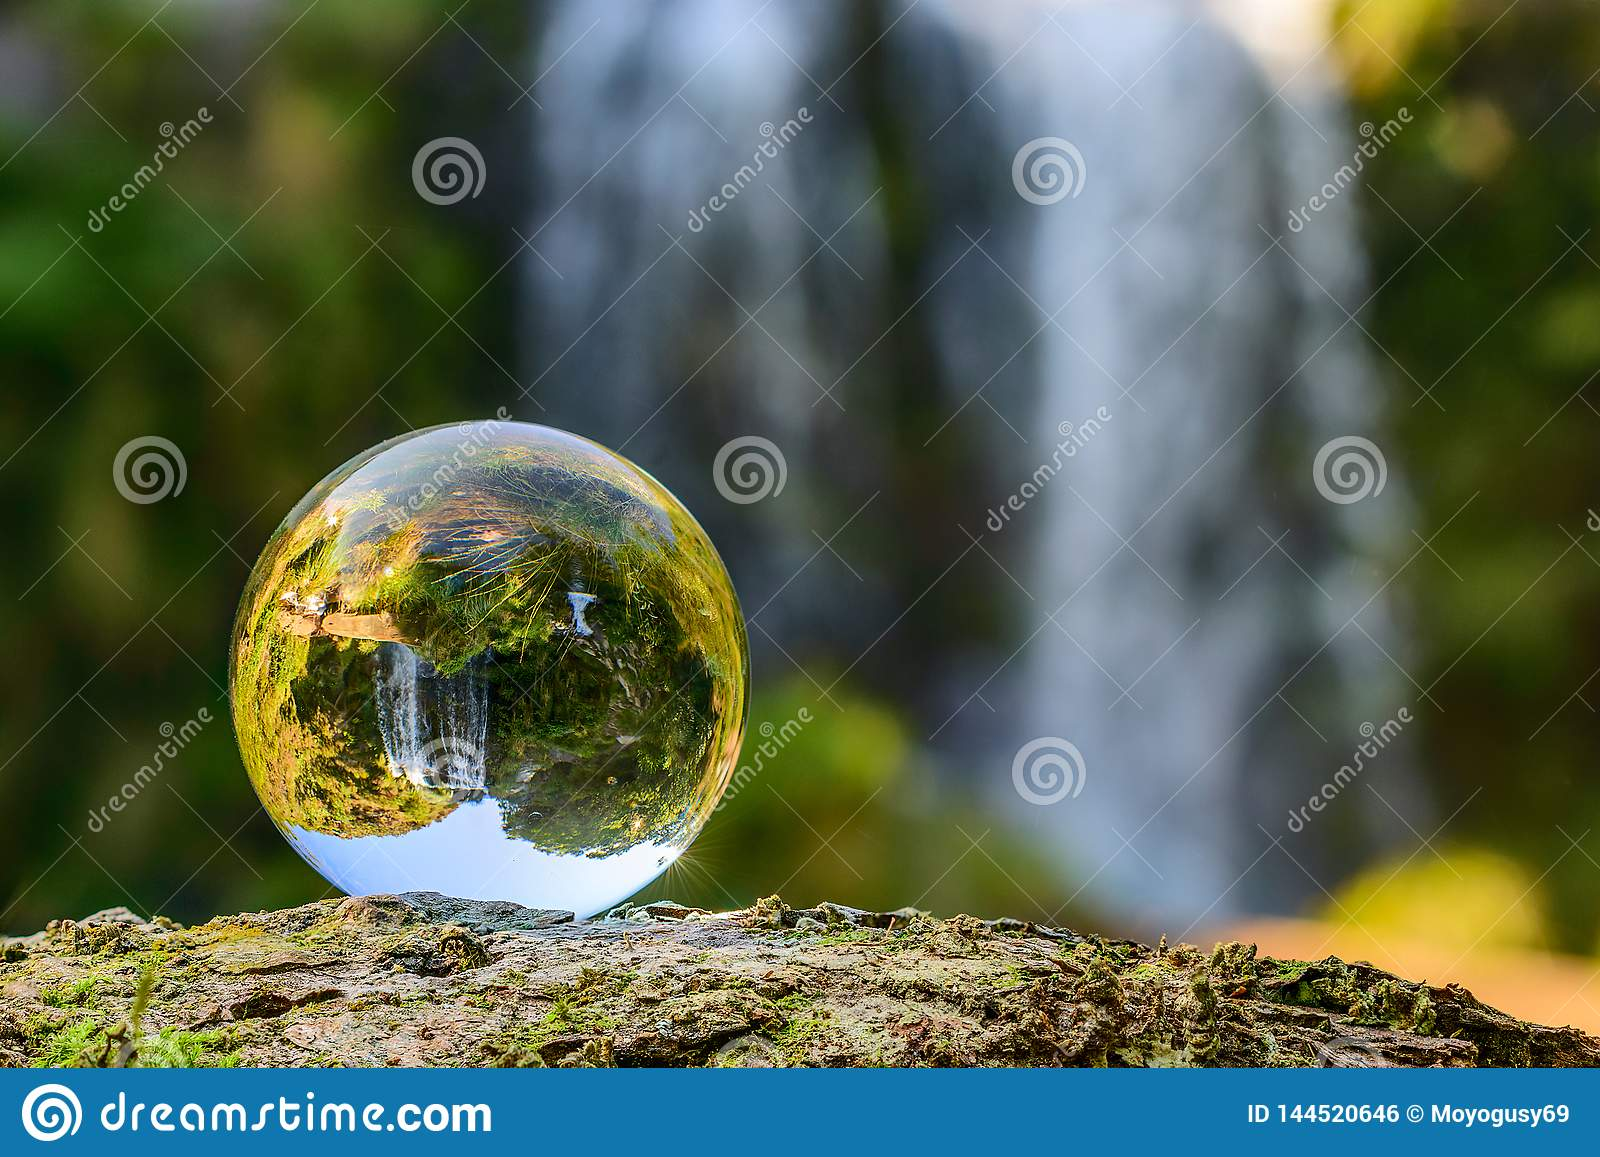 Waterfall in a crystal ball